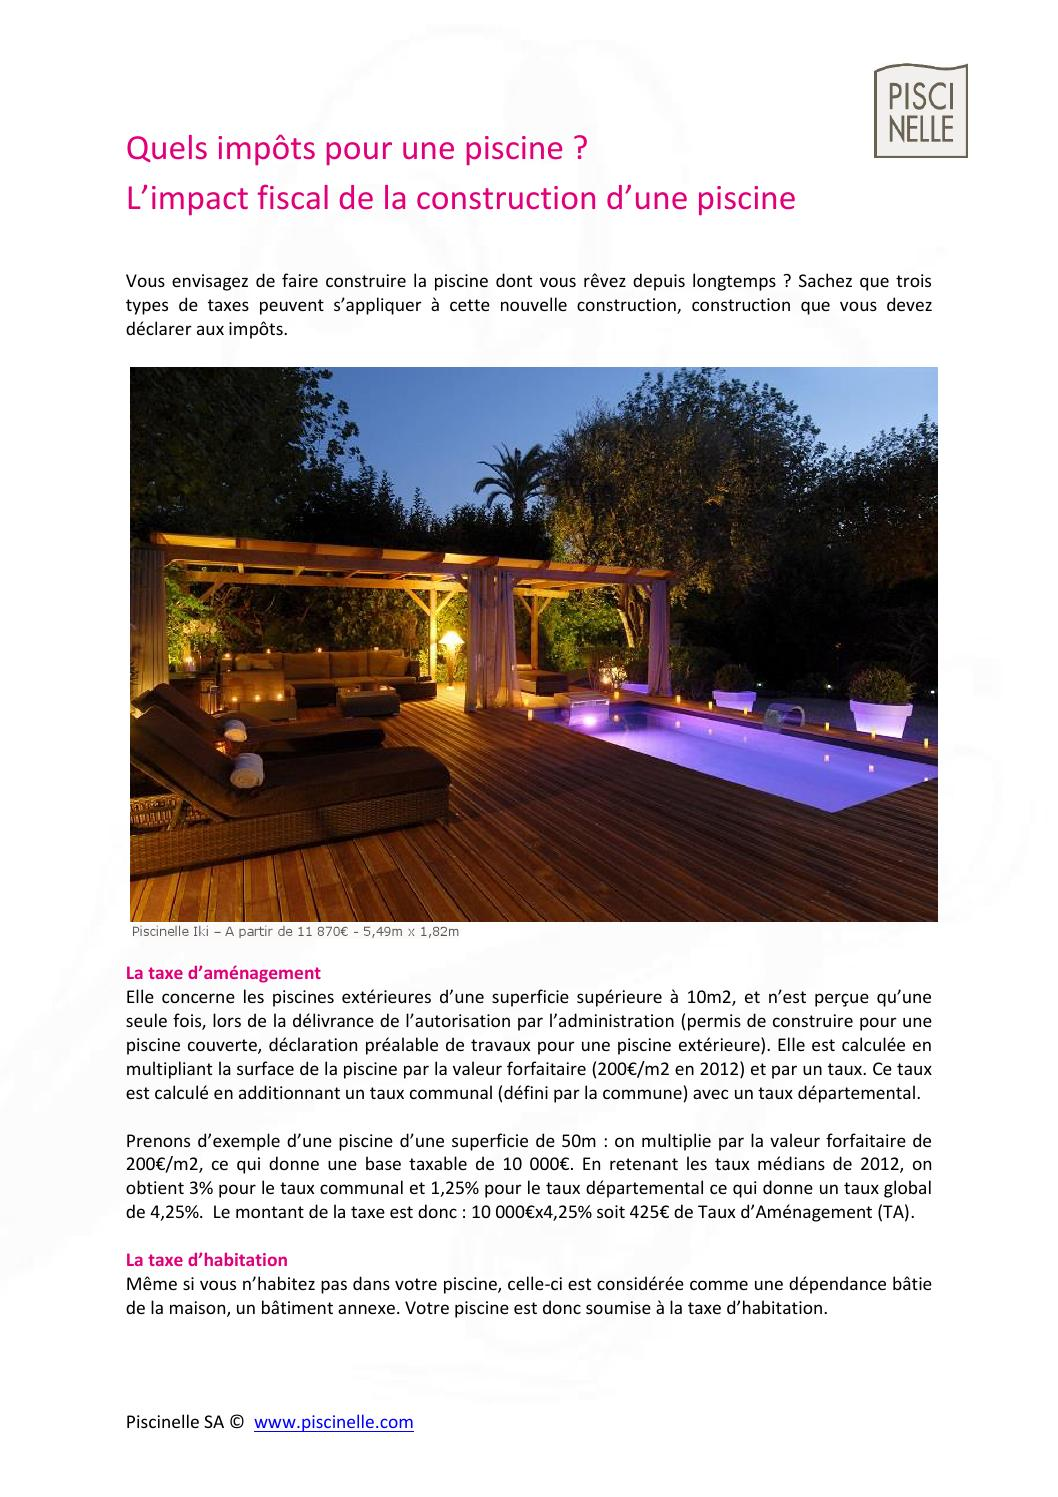 Guide de la fiscalit d 39 une piscine by piscinelle issuu for Construire une piscine couverte